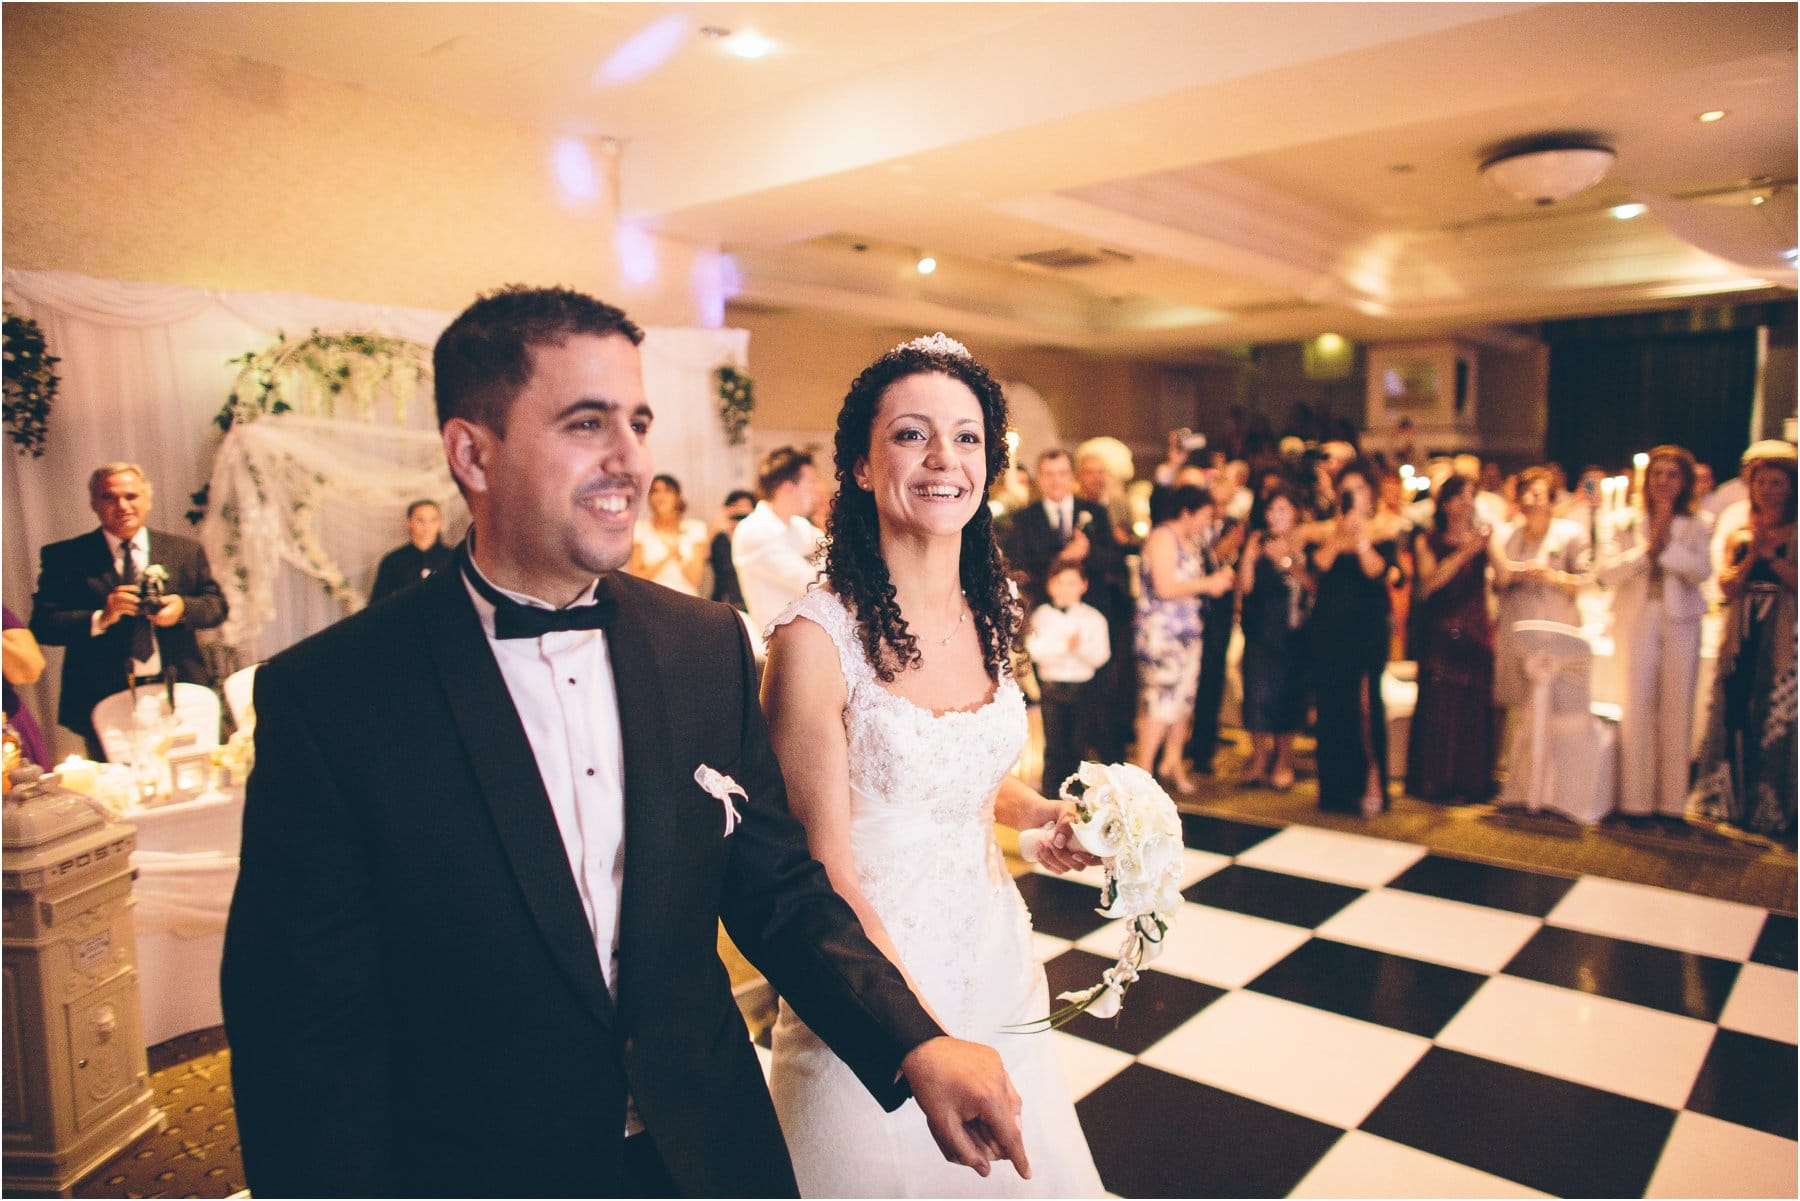 Midland_Manchester_Wedding_Photography_0096